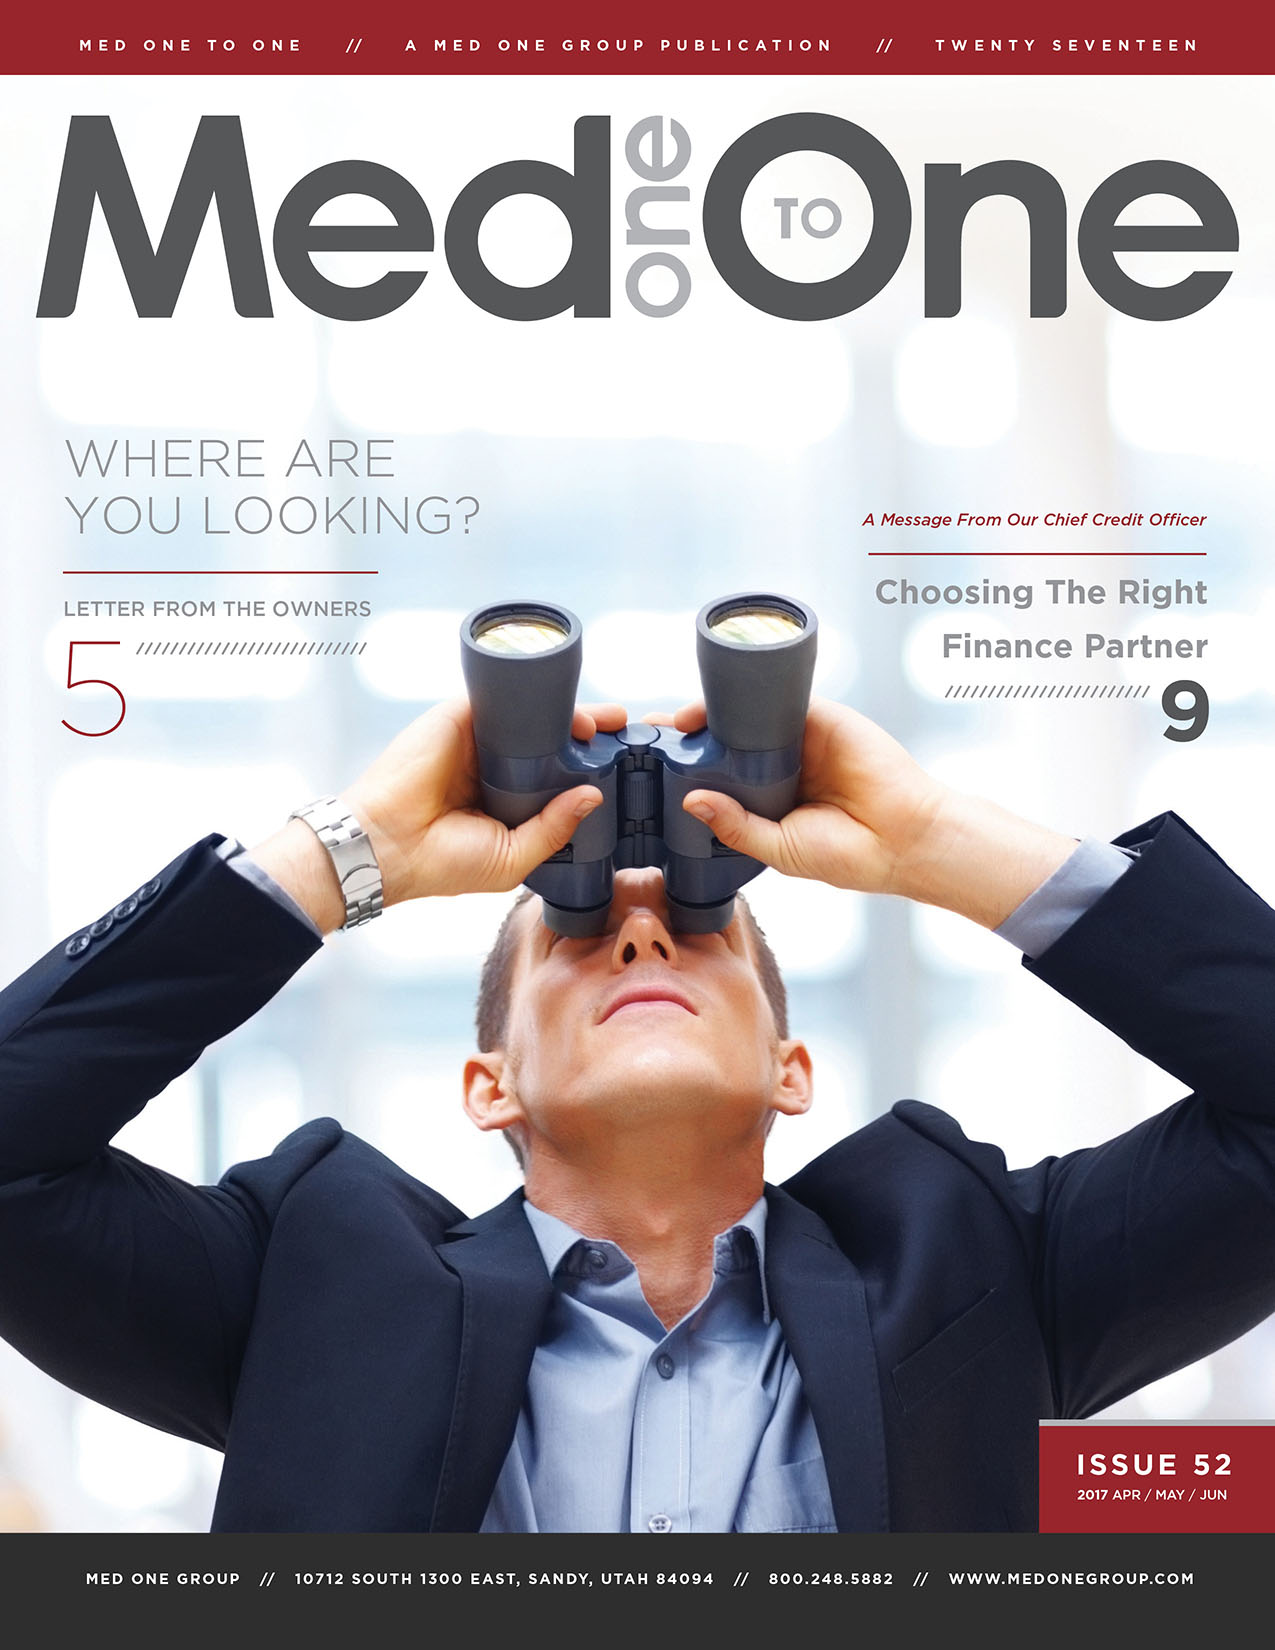 Med One To One Number 52 Cover